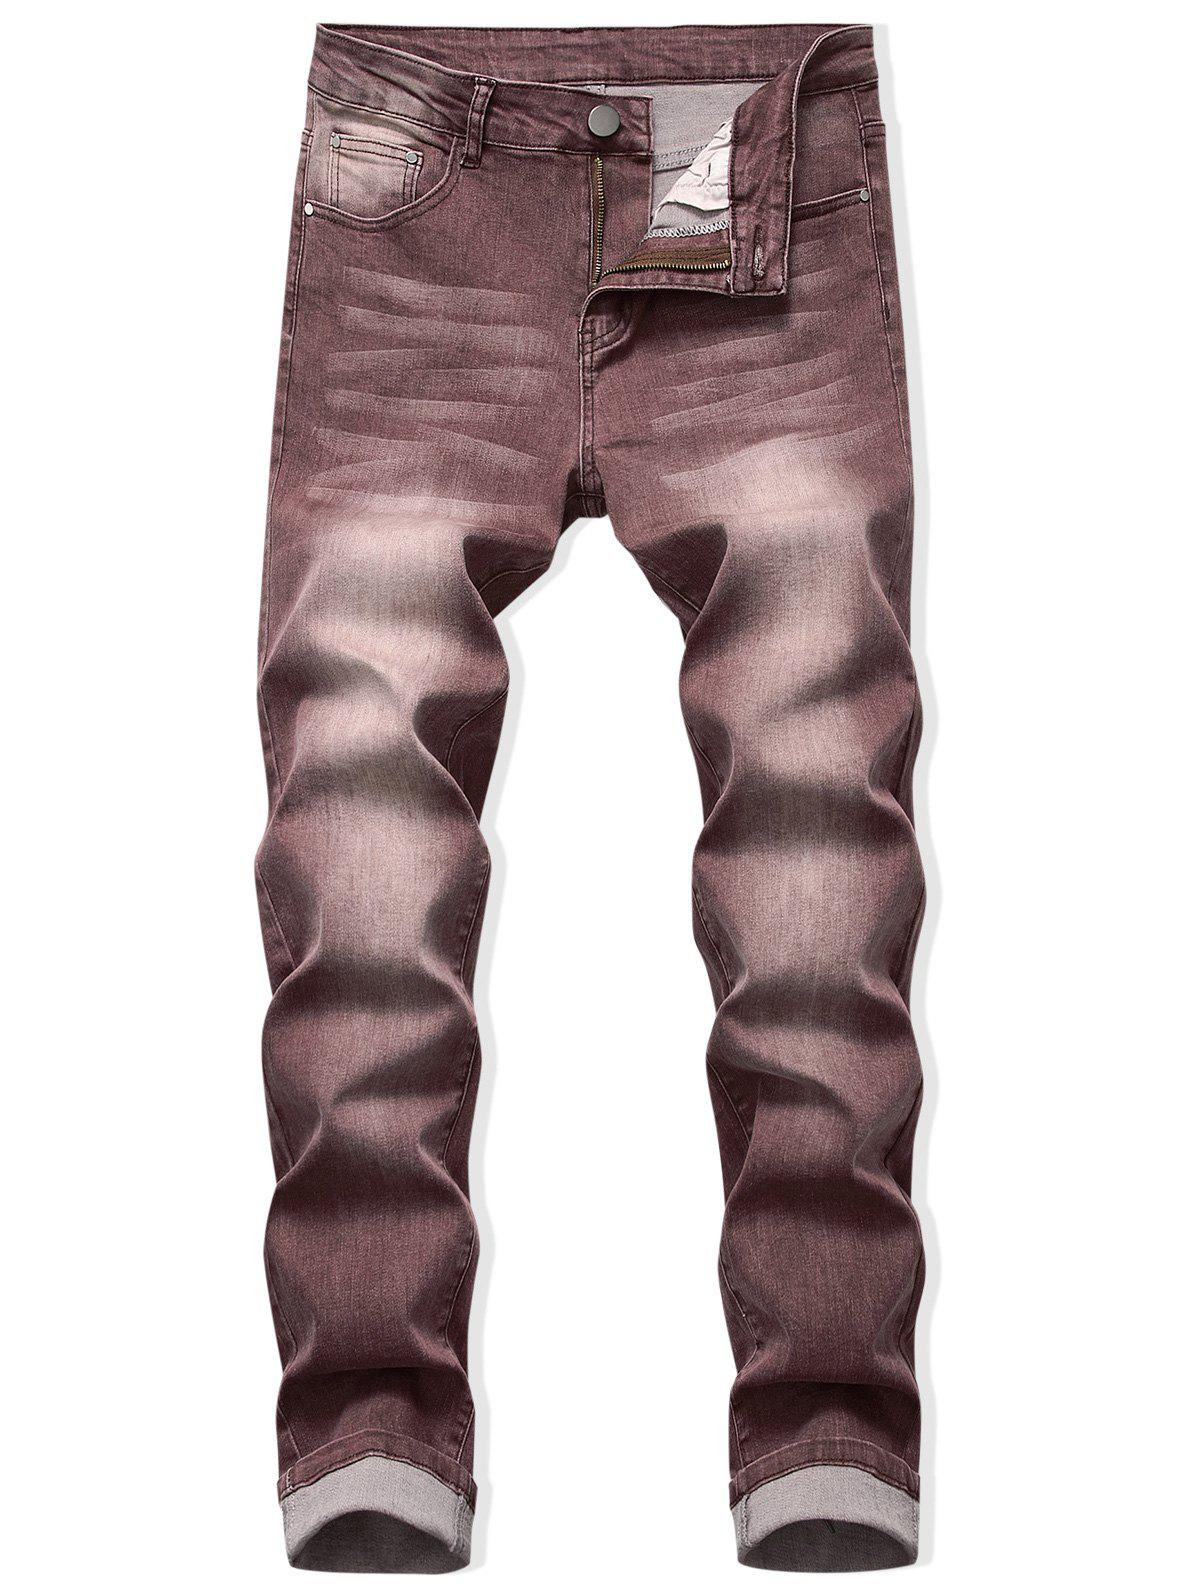 Zip Fly Long Faded Wash Casual Jeans